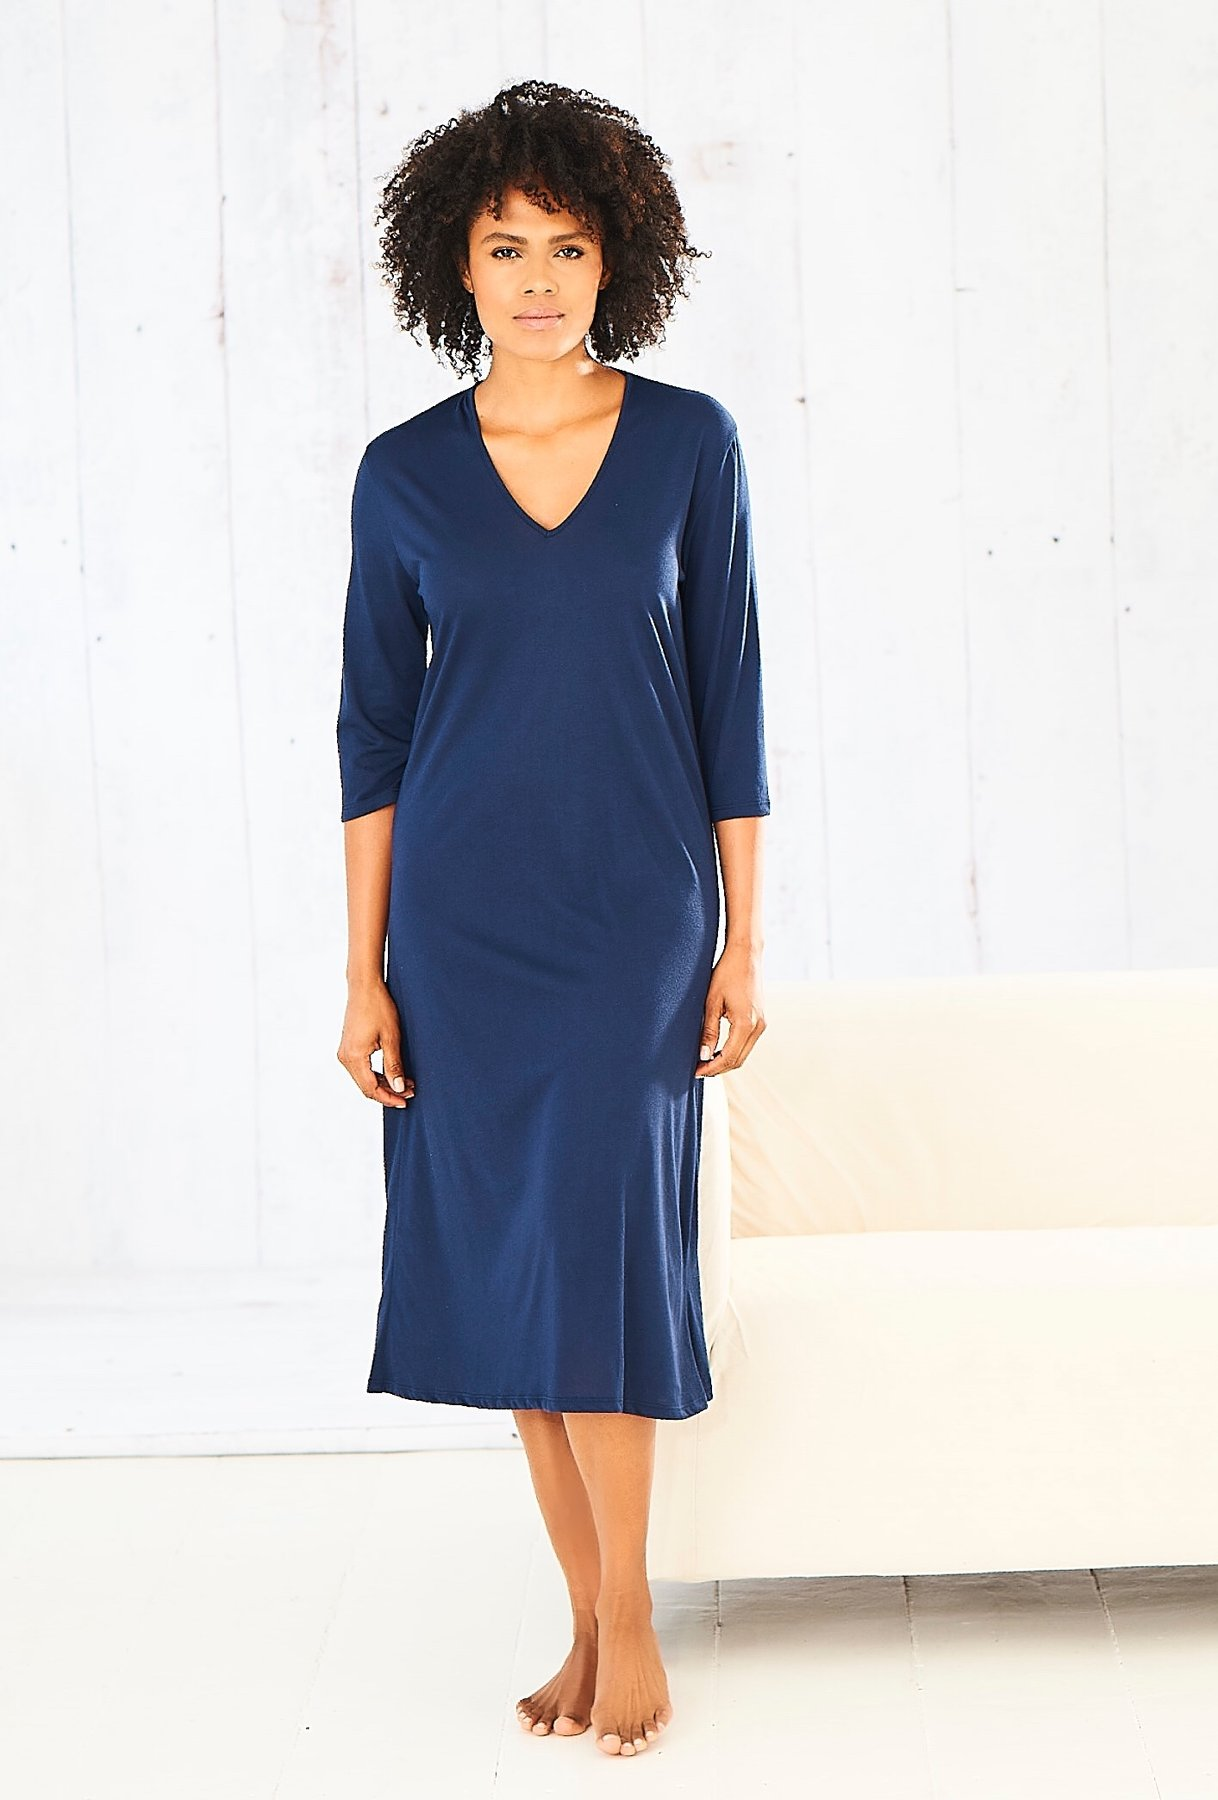 cucumber clothing Navy V Neck Three Quarter Sleeve Dress.JPG